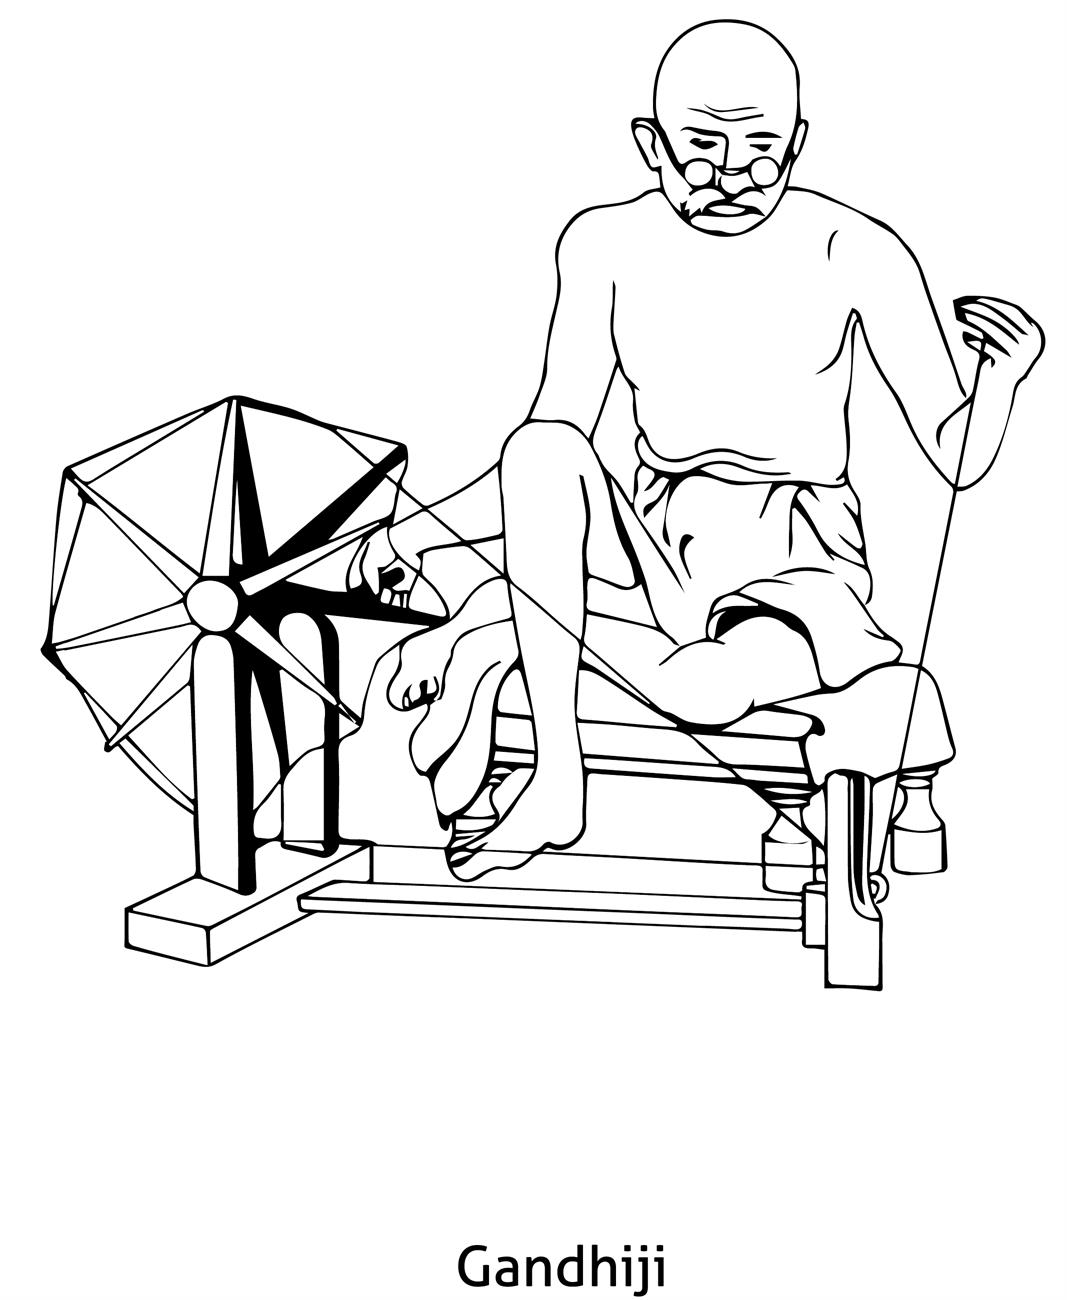 gandhiji standing coloring pages - photo#5